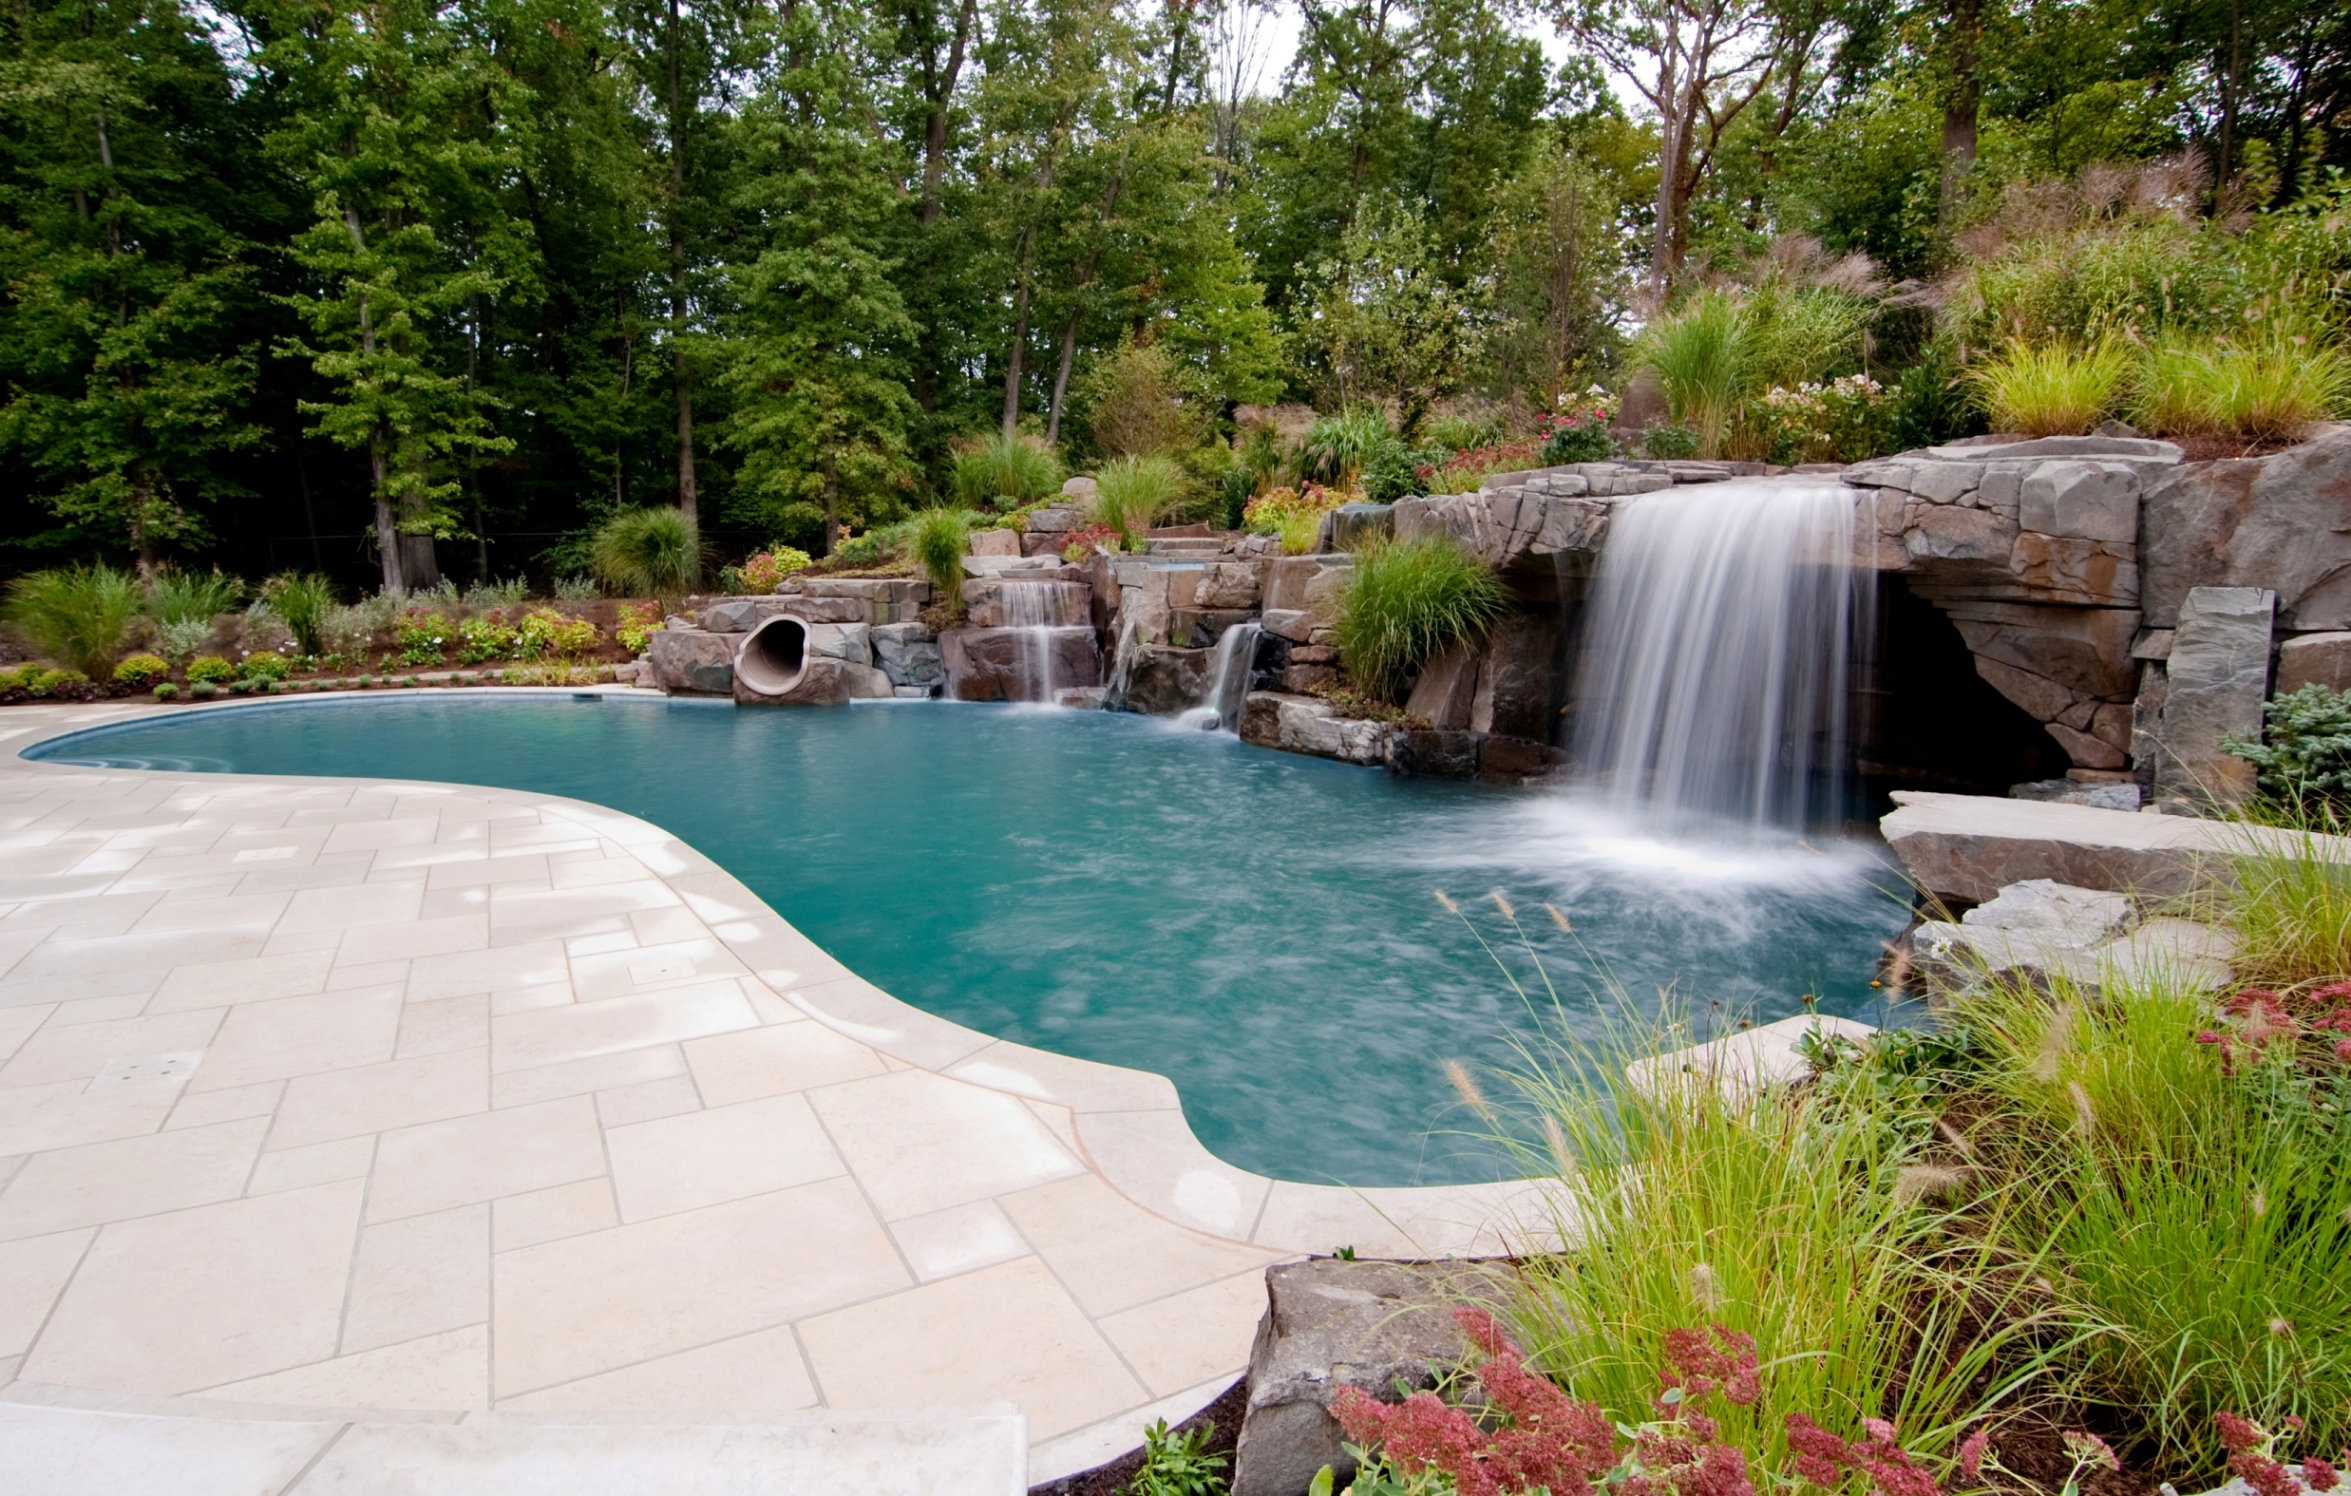 New jersey inground pool company earns international award for Pool design pictures